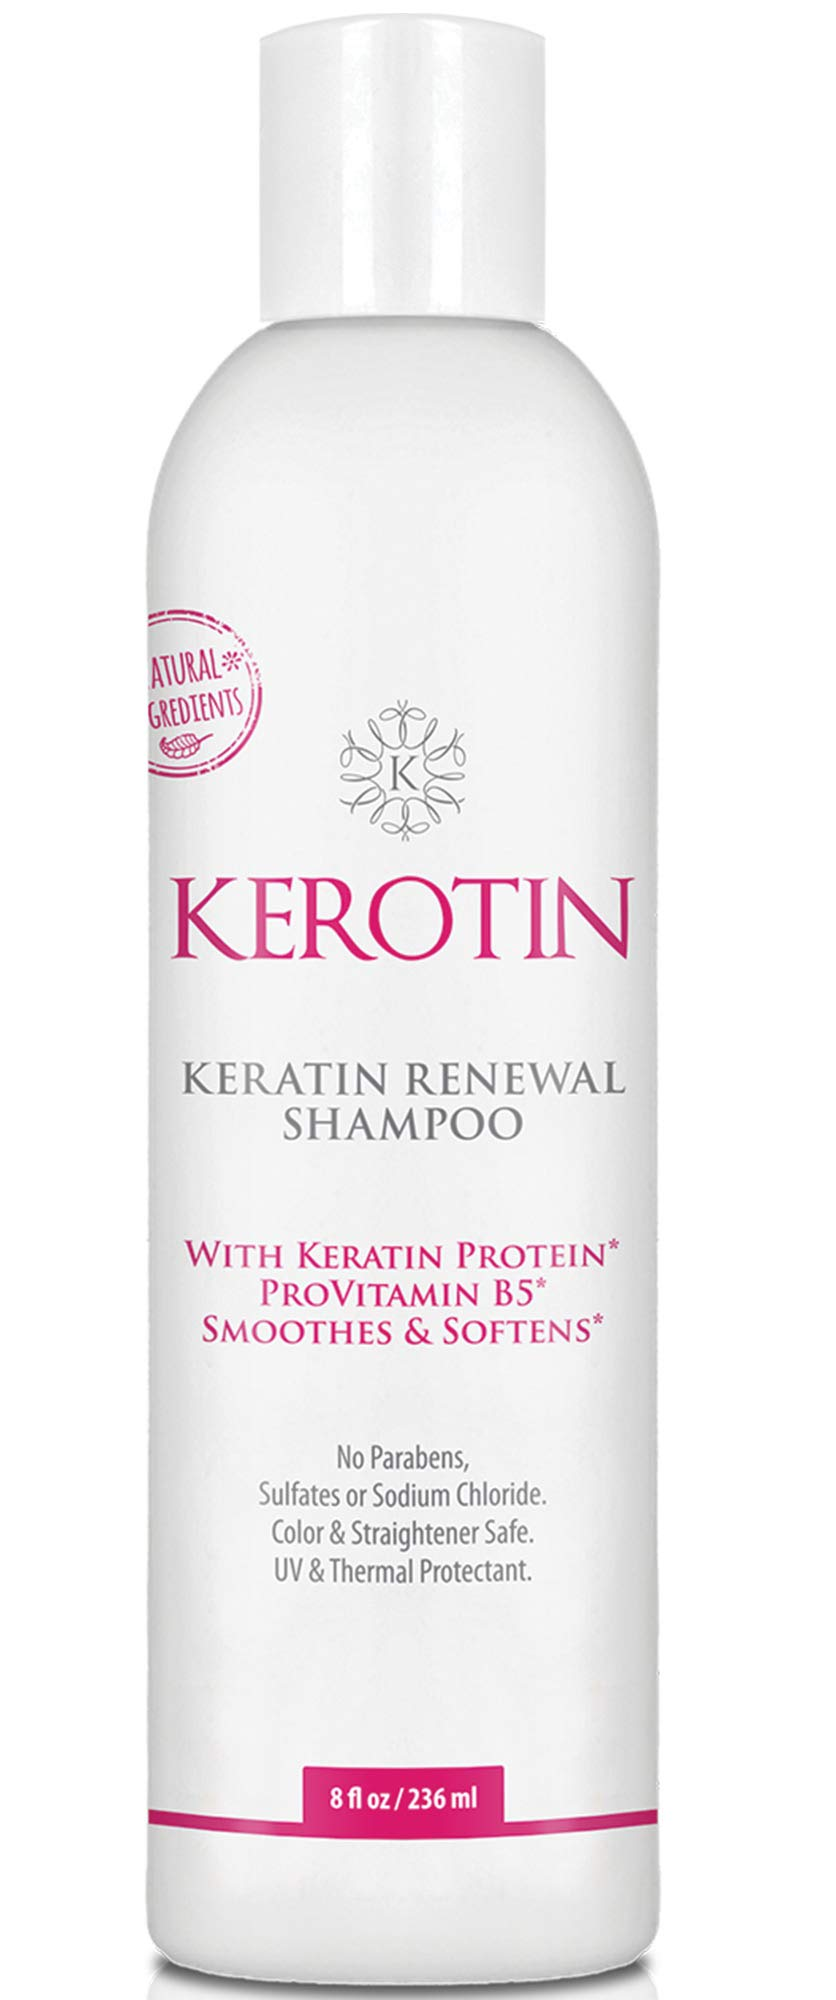 Keratin Renewal Shampoo - Repairs Damaged Hair & Promotes Growth with Follicle Stimulating Ingredients - Color Safe & Infused with Keratin Amino Complex - 8 Fl Oz by K Kerotin